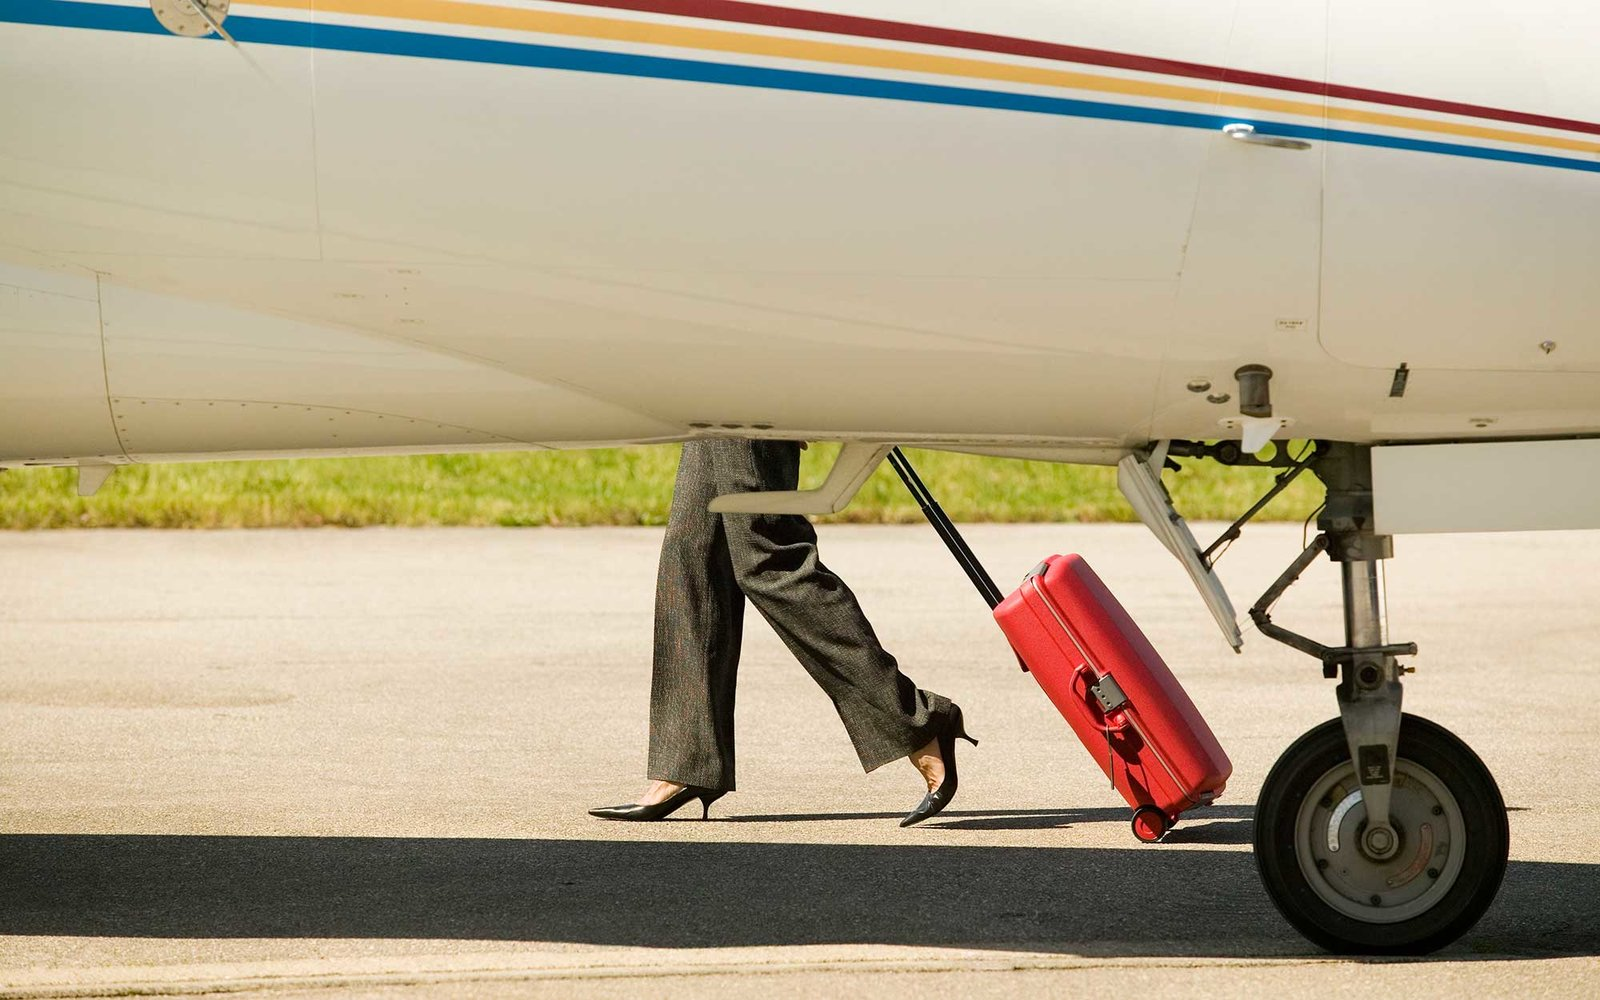 Woman walking with suitcase behind airplane